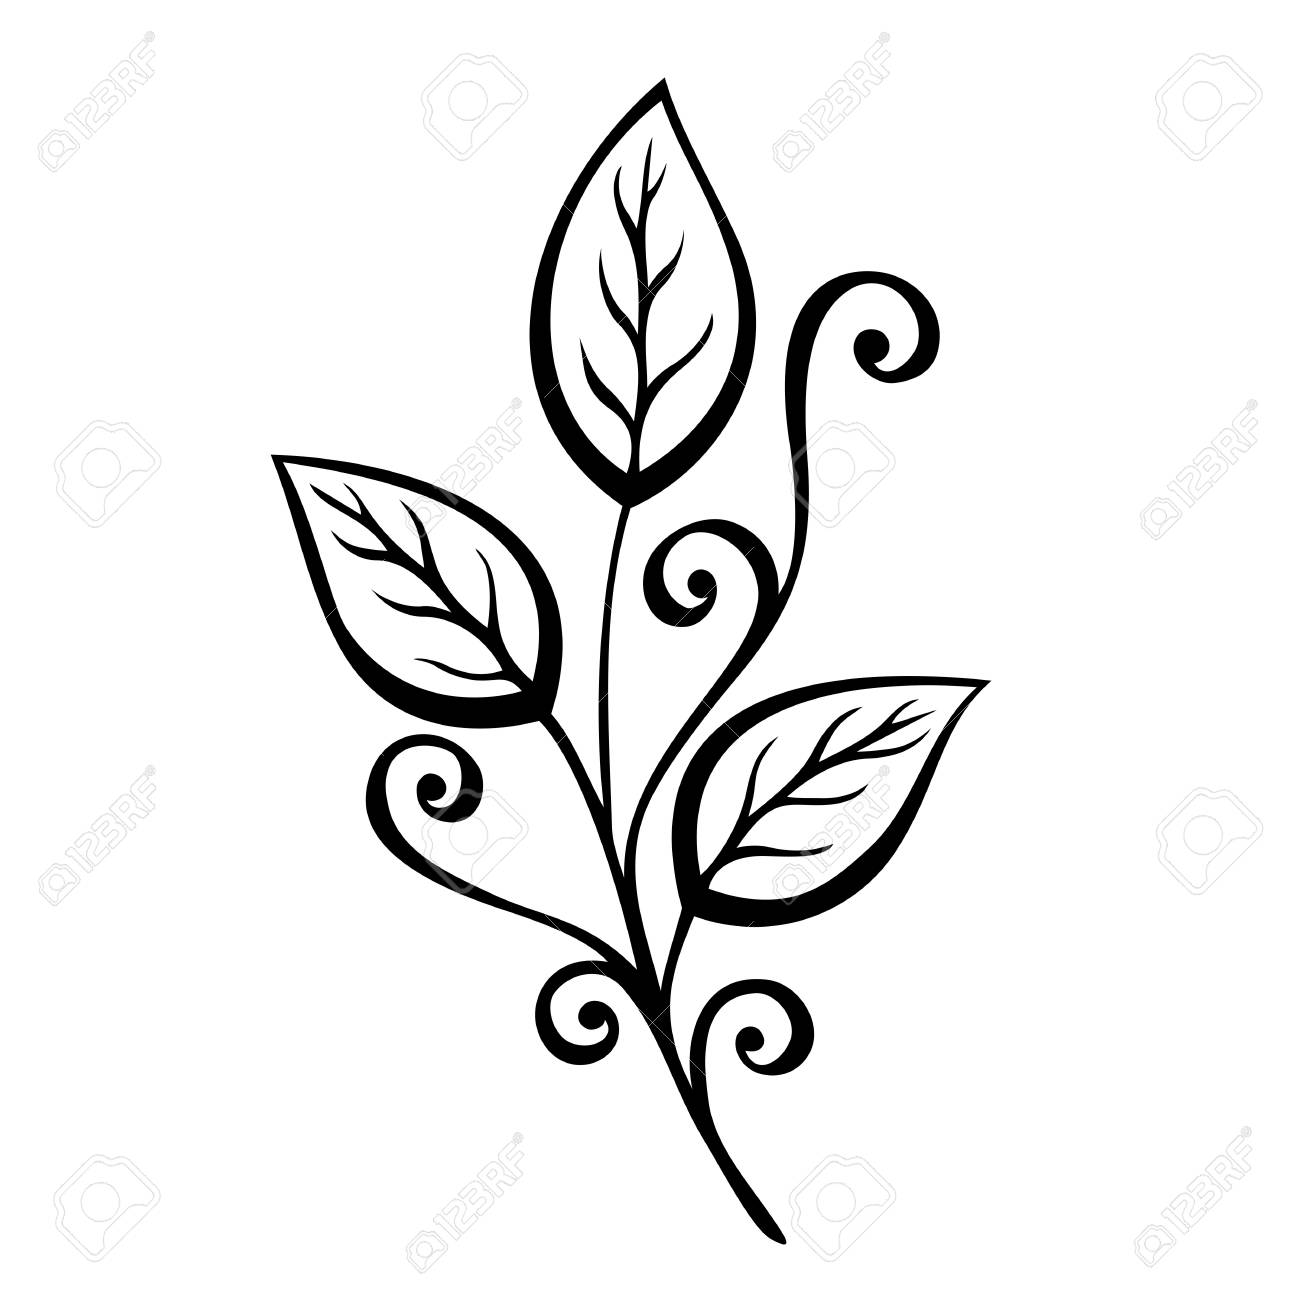 original decorative leaf with ornament vector patterned design royalty free cliparts vectors and stock illustration image 26917889 original decorative leaf with ornament vector patterned design